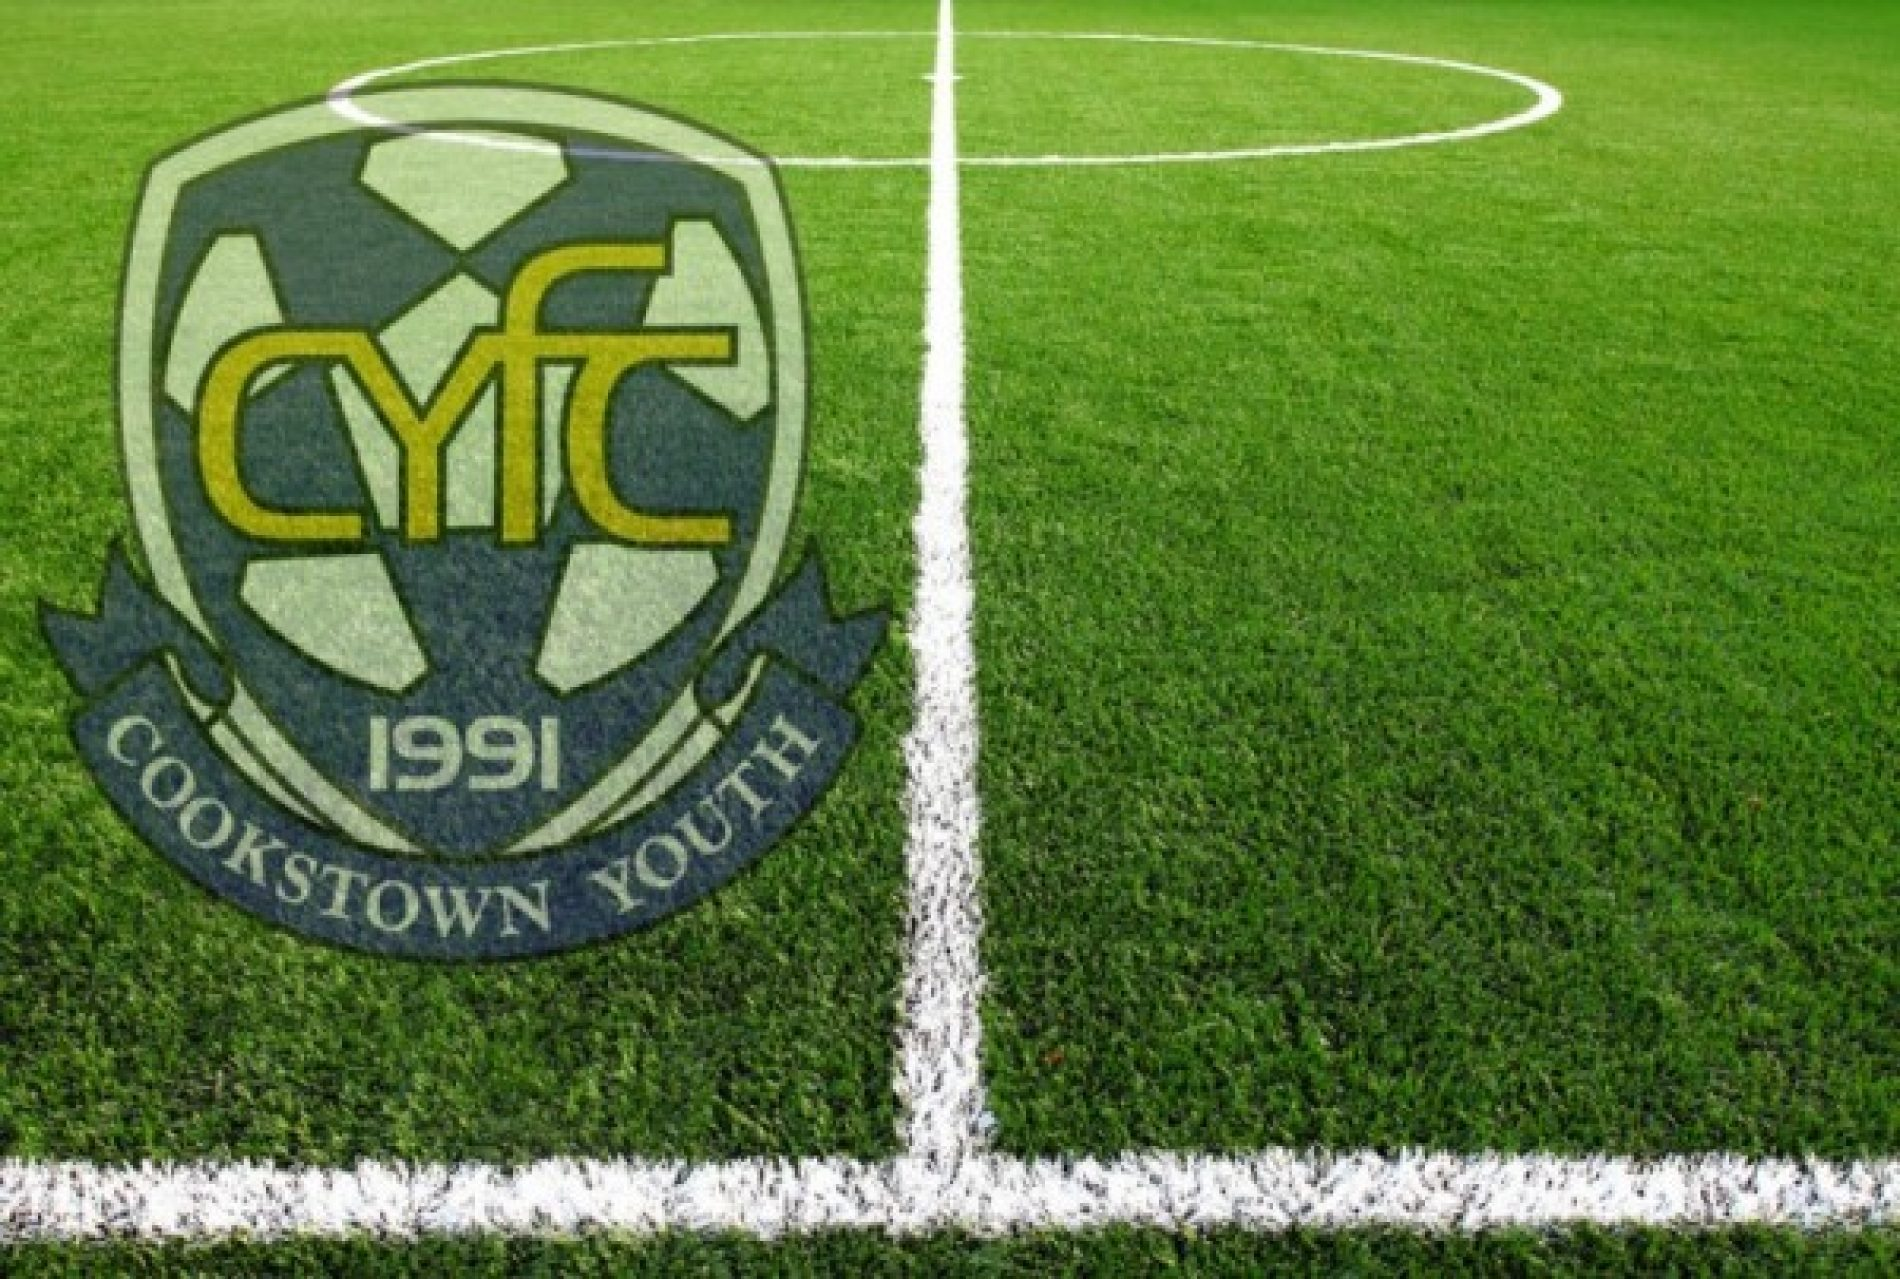 CYFC UPDATE FOR SATURDAY 9th APRIL 2016